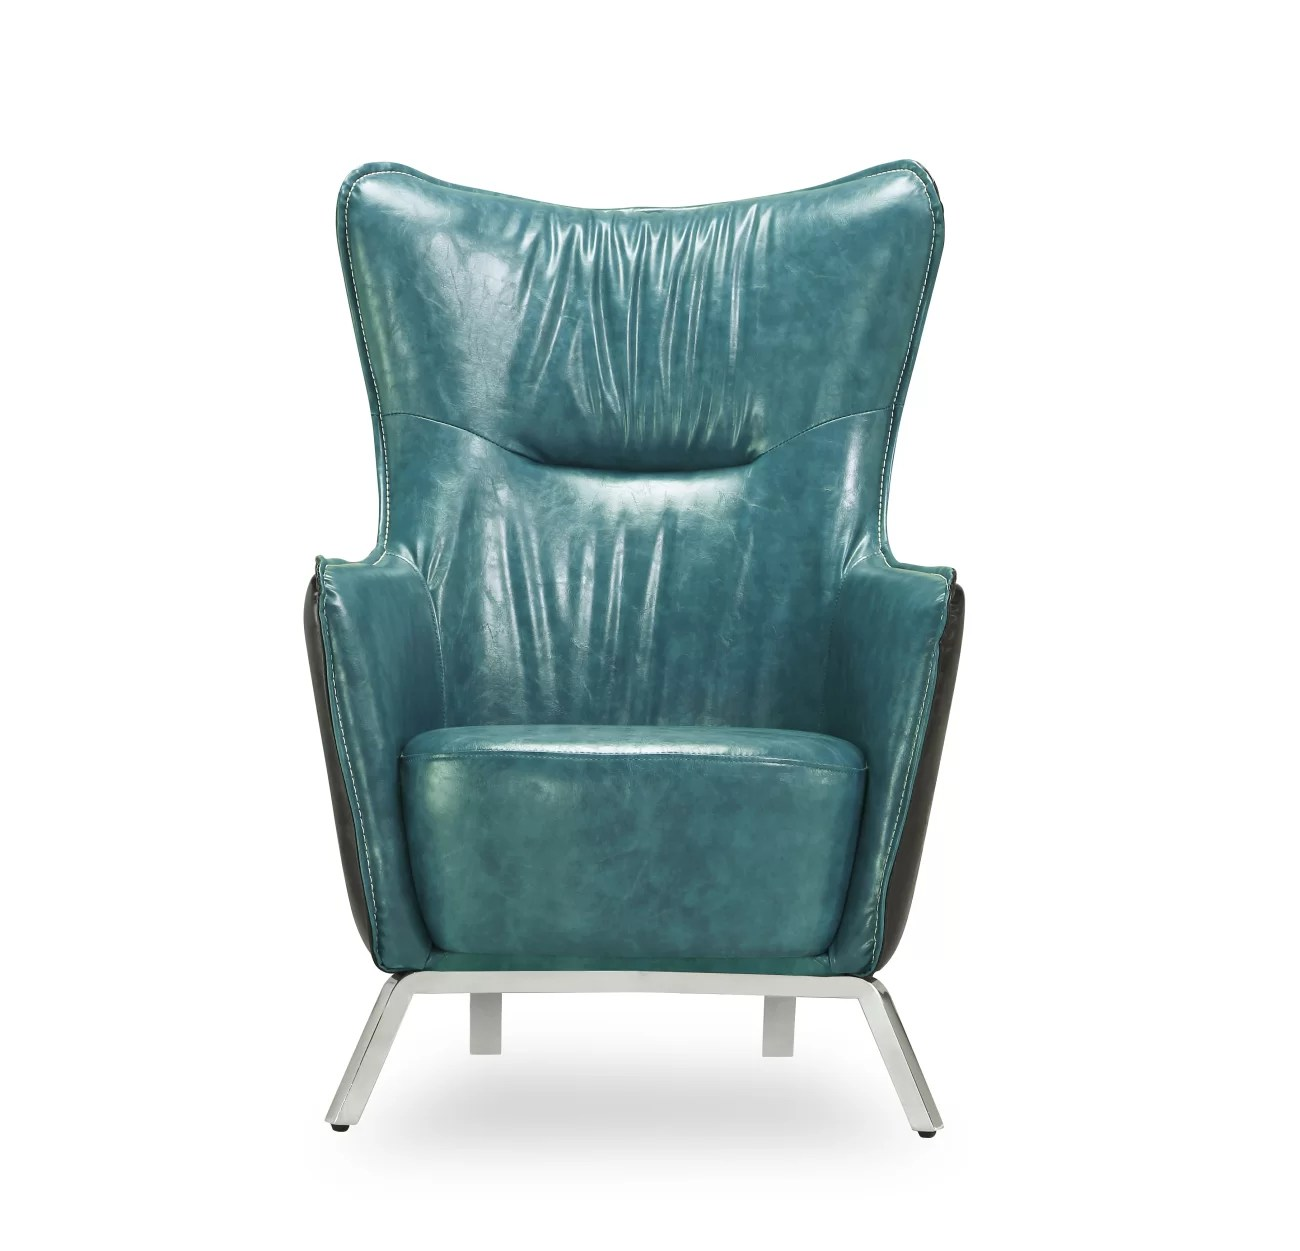 Teal Wingback Chair Alisa Wingback Chair